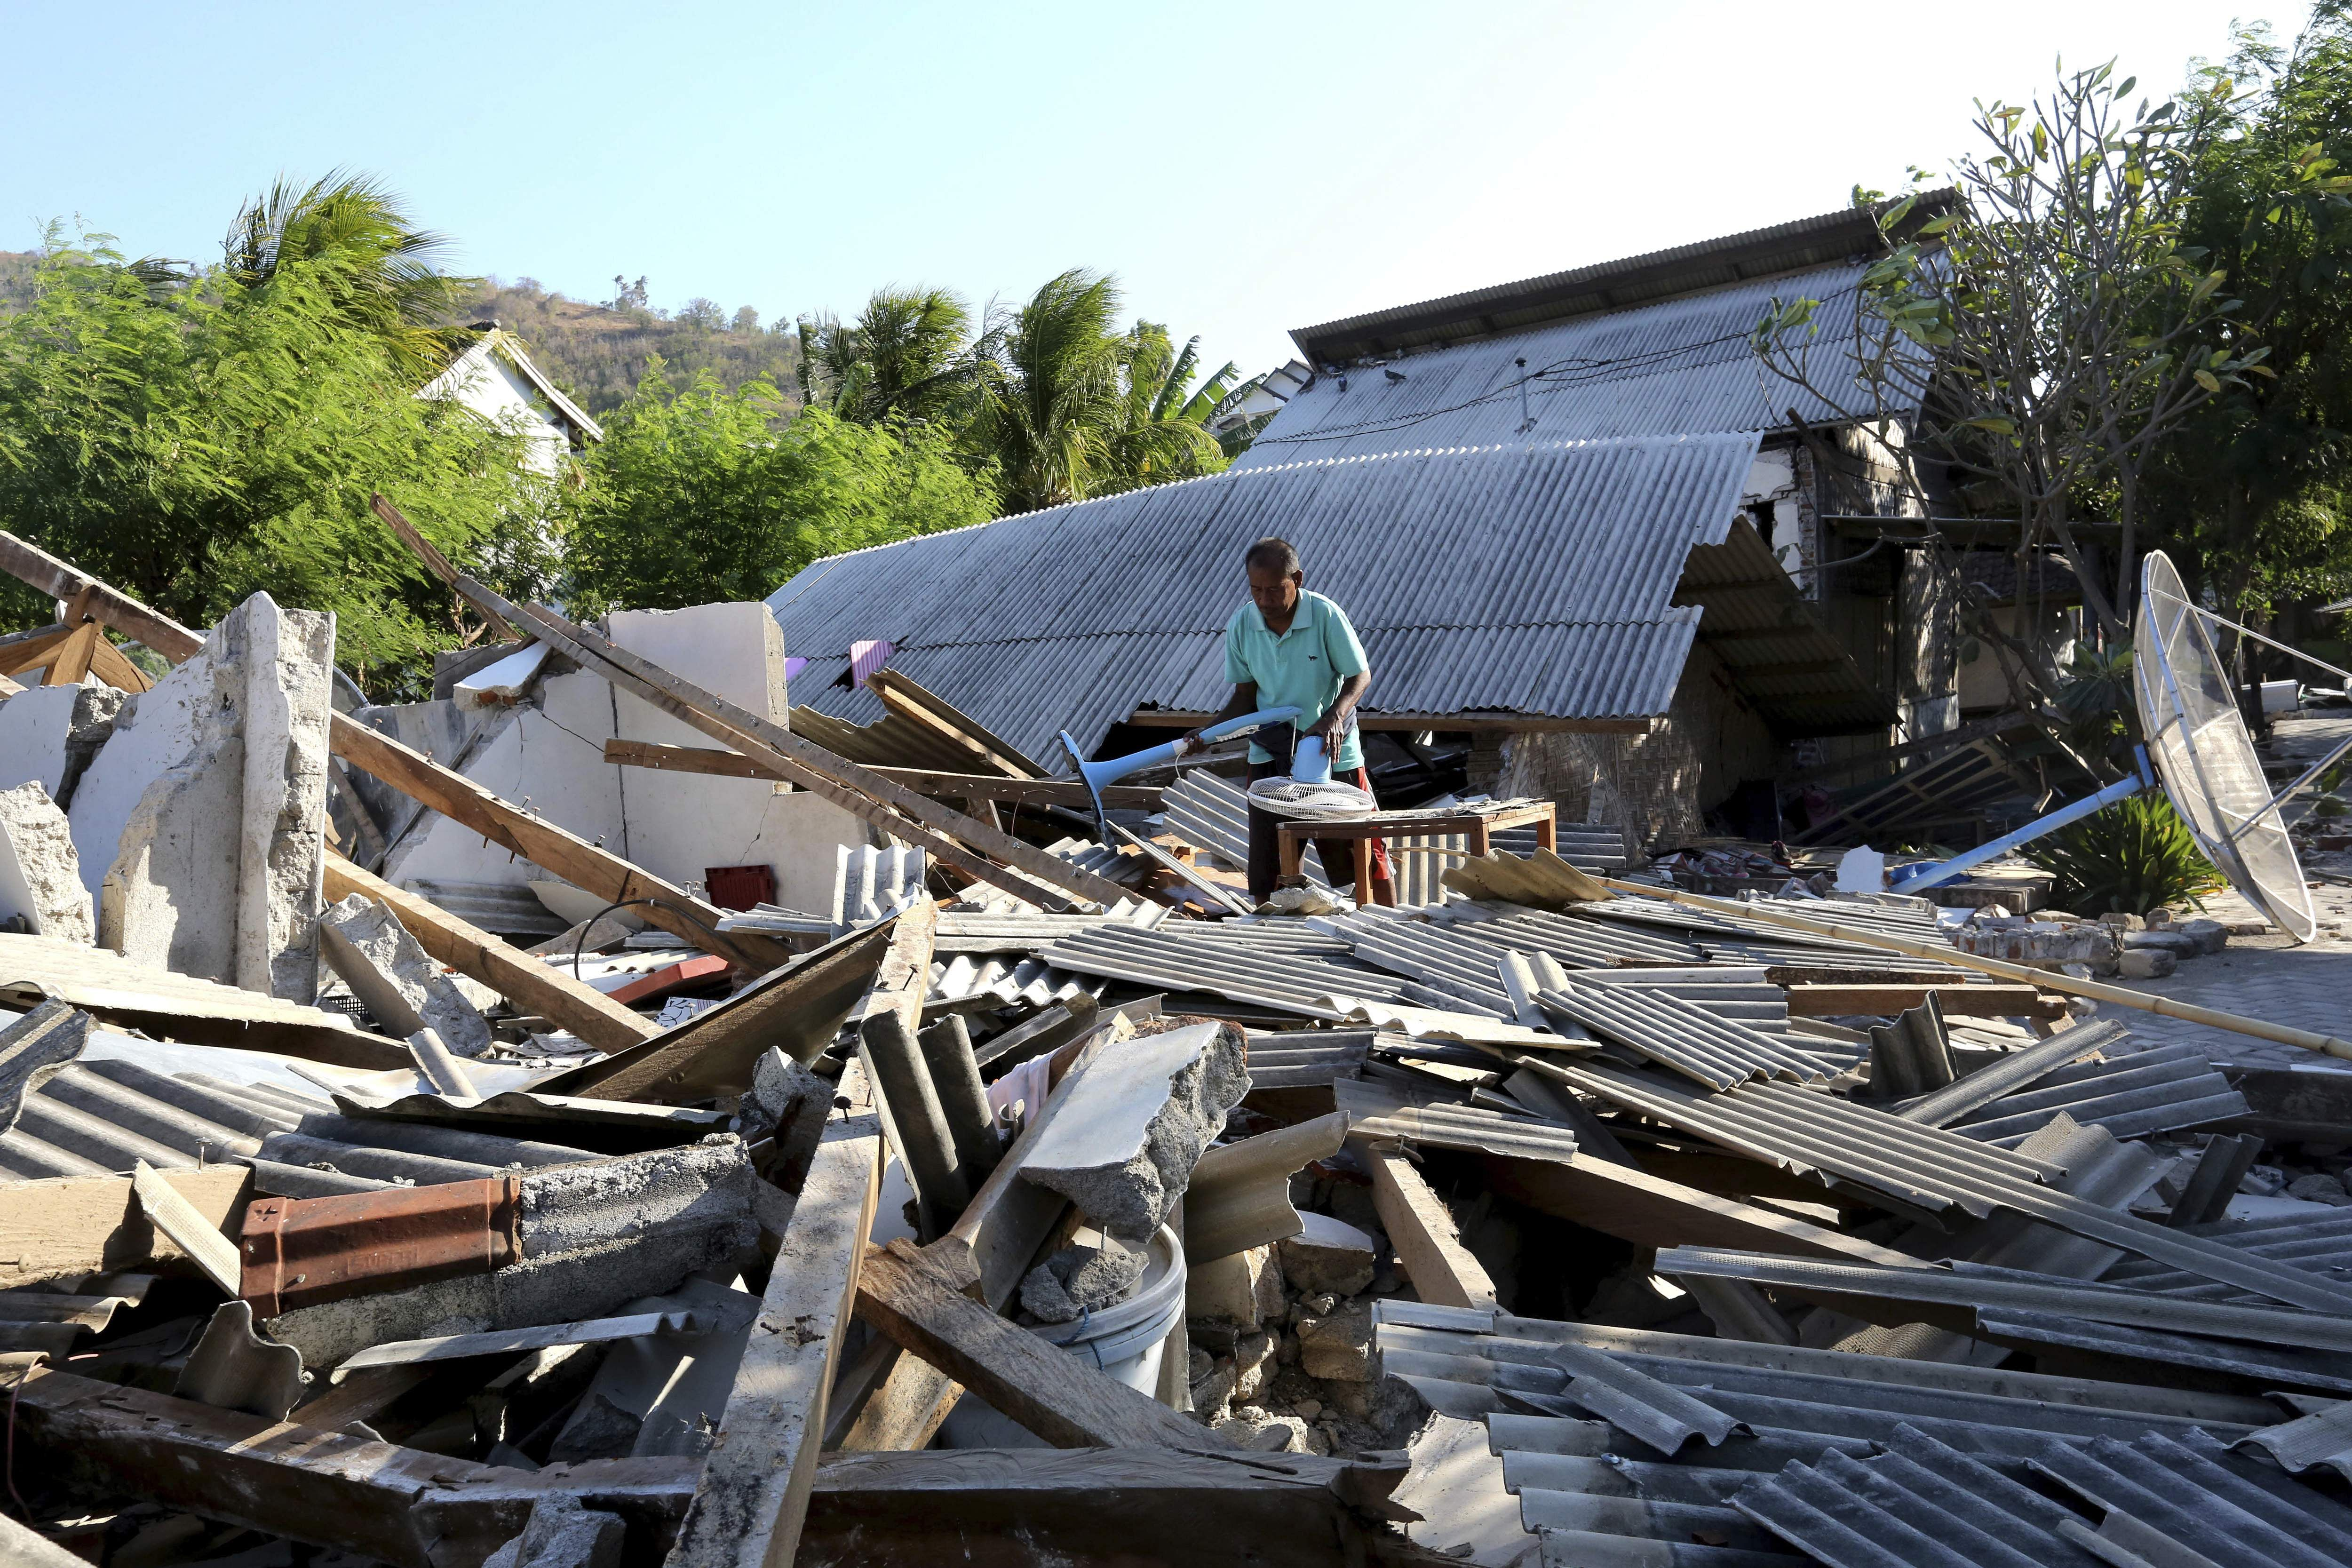 Usable items are salvaged from a home destroyed in an earthquake in North Lombok Indonesia